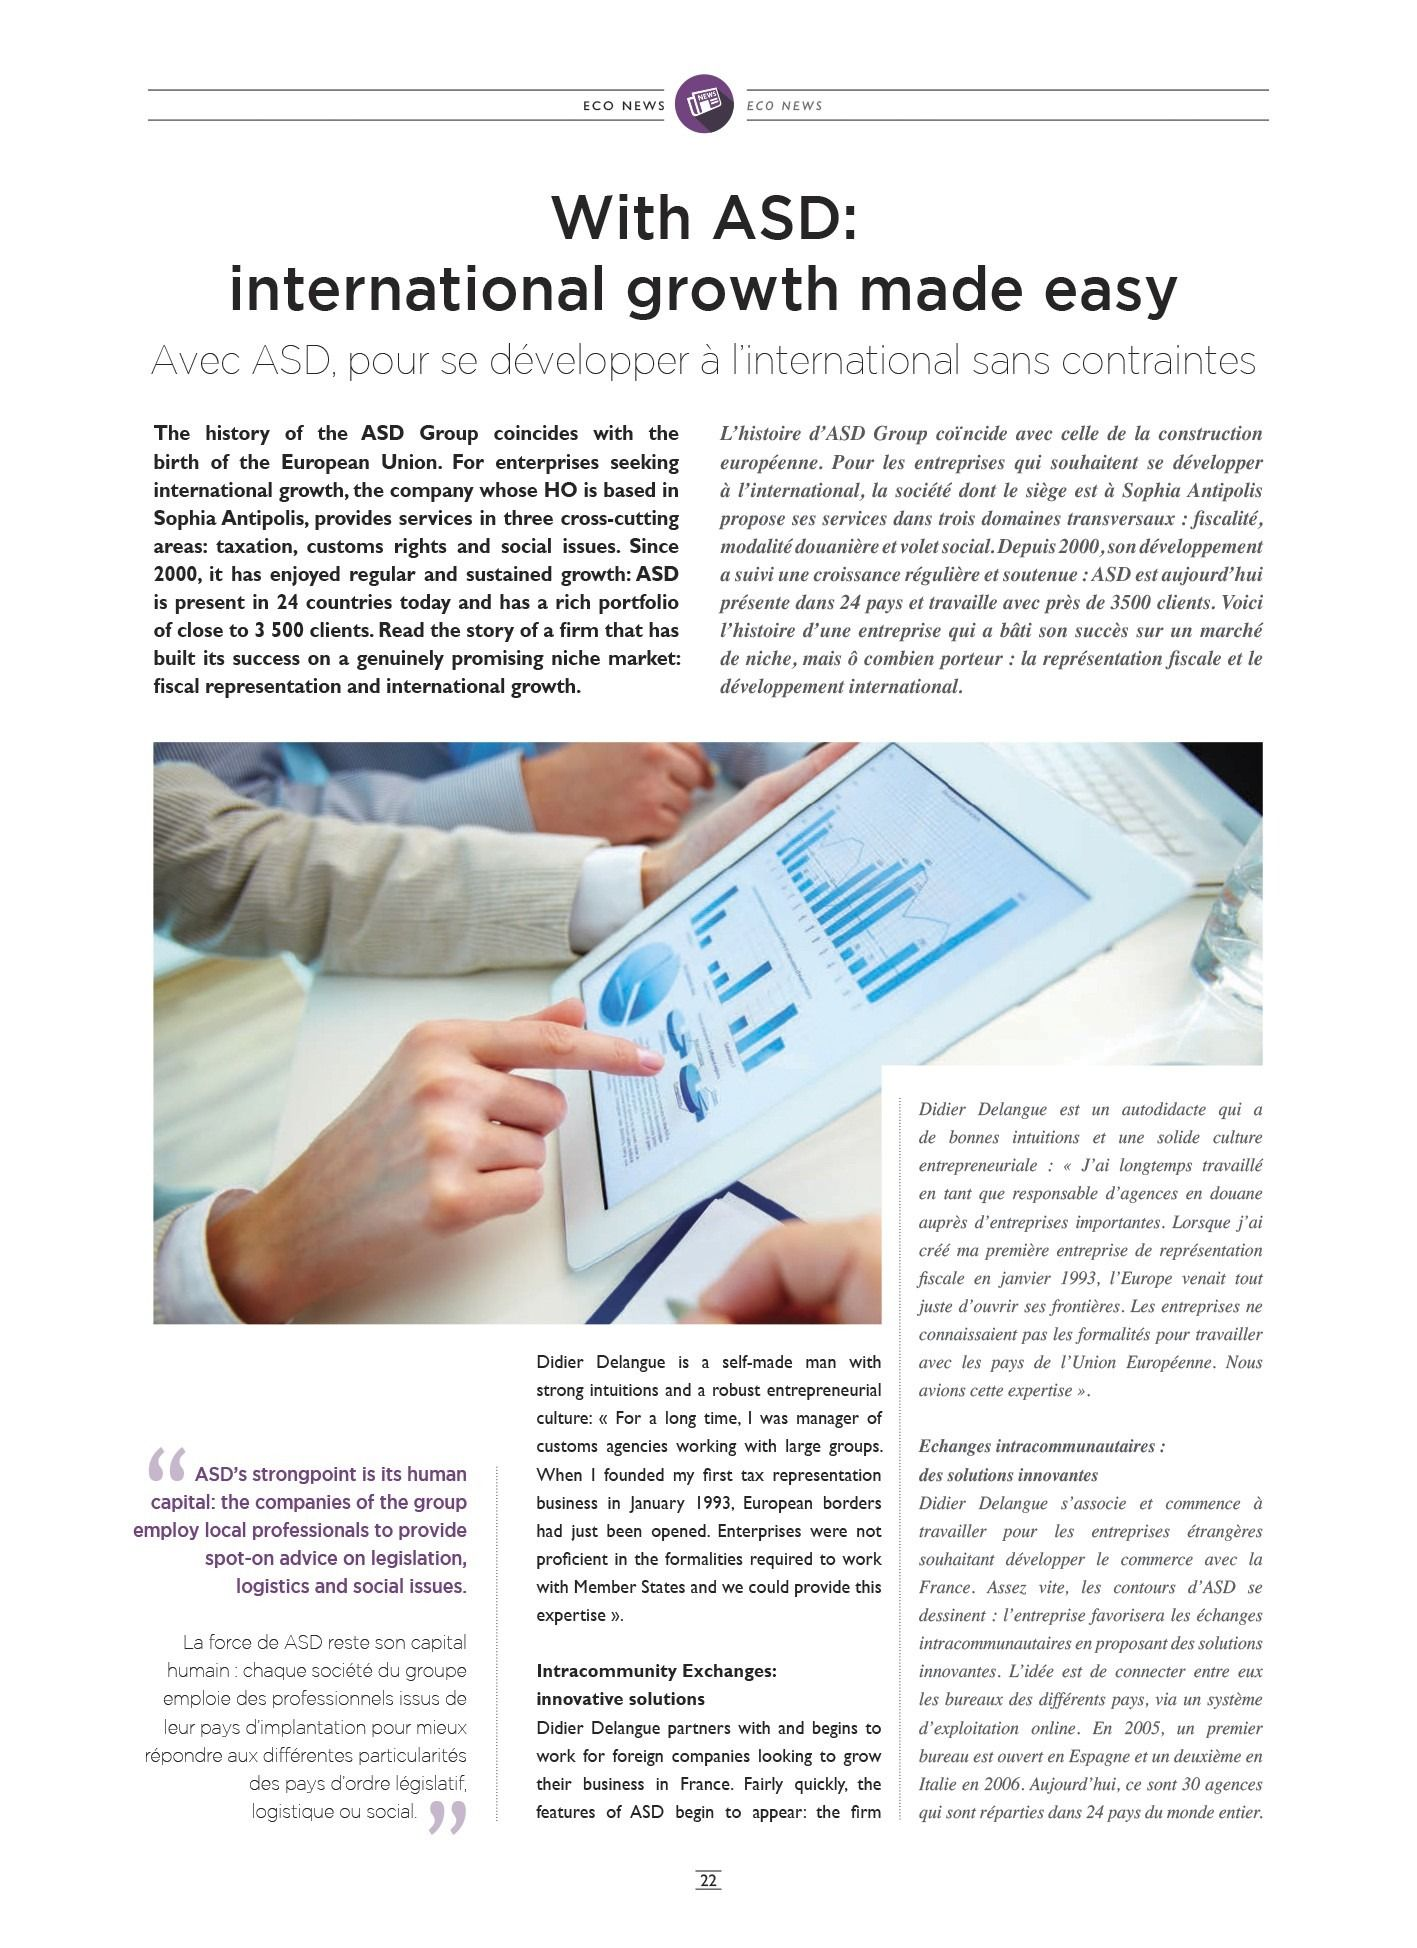 Asd Sa with asd: international growth made easy